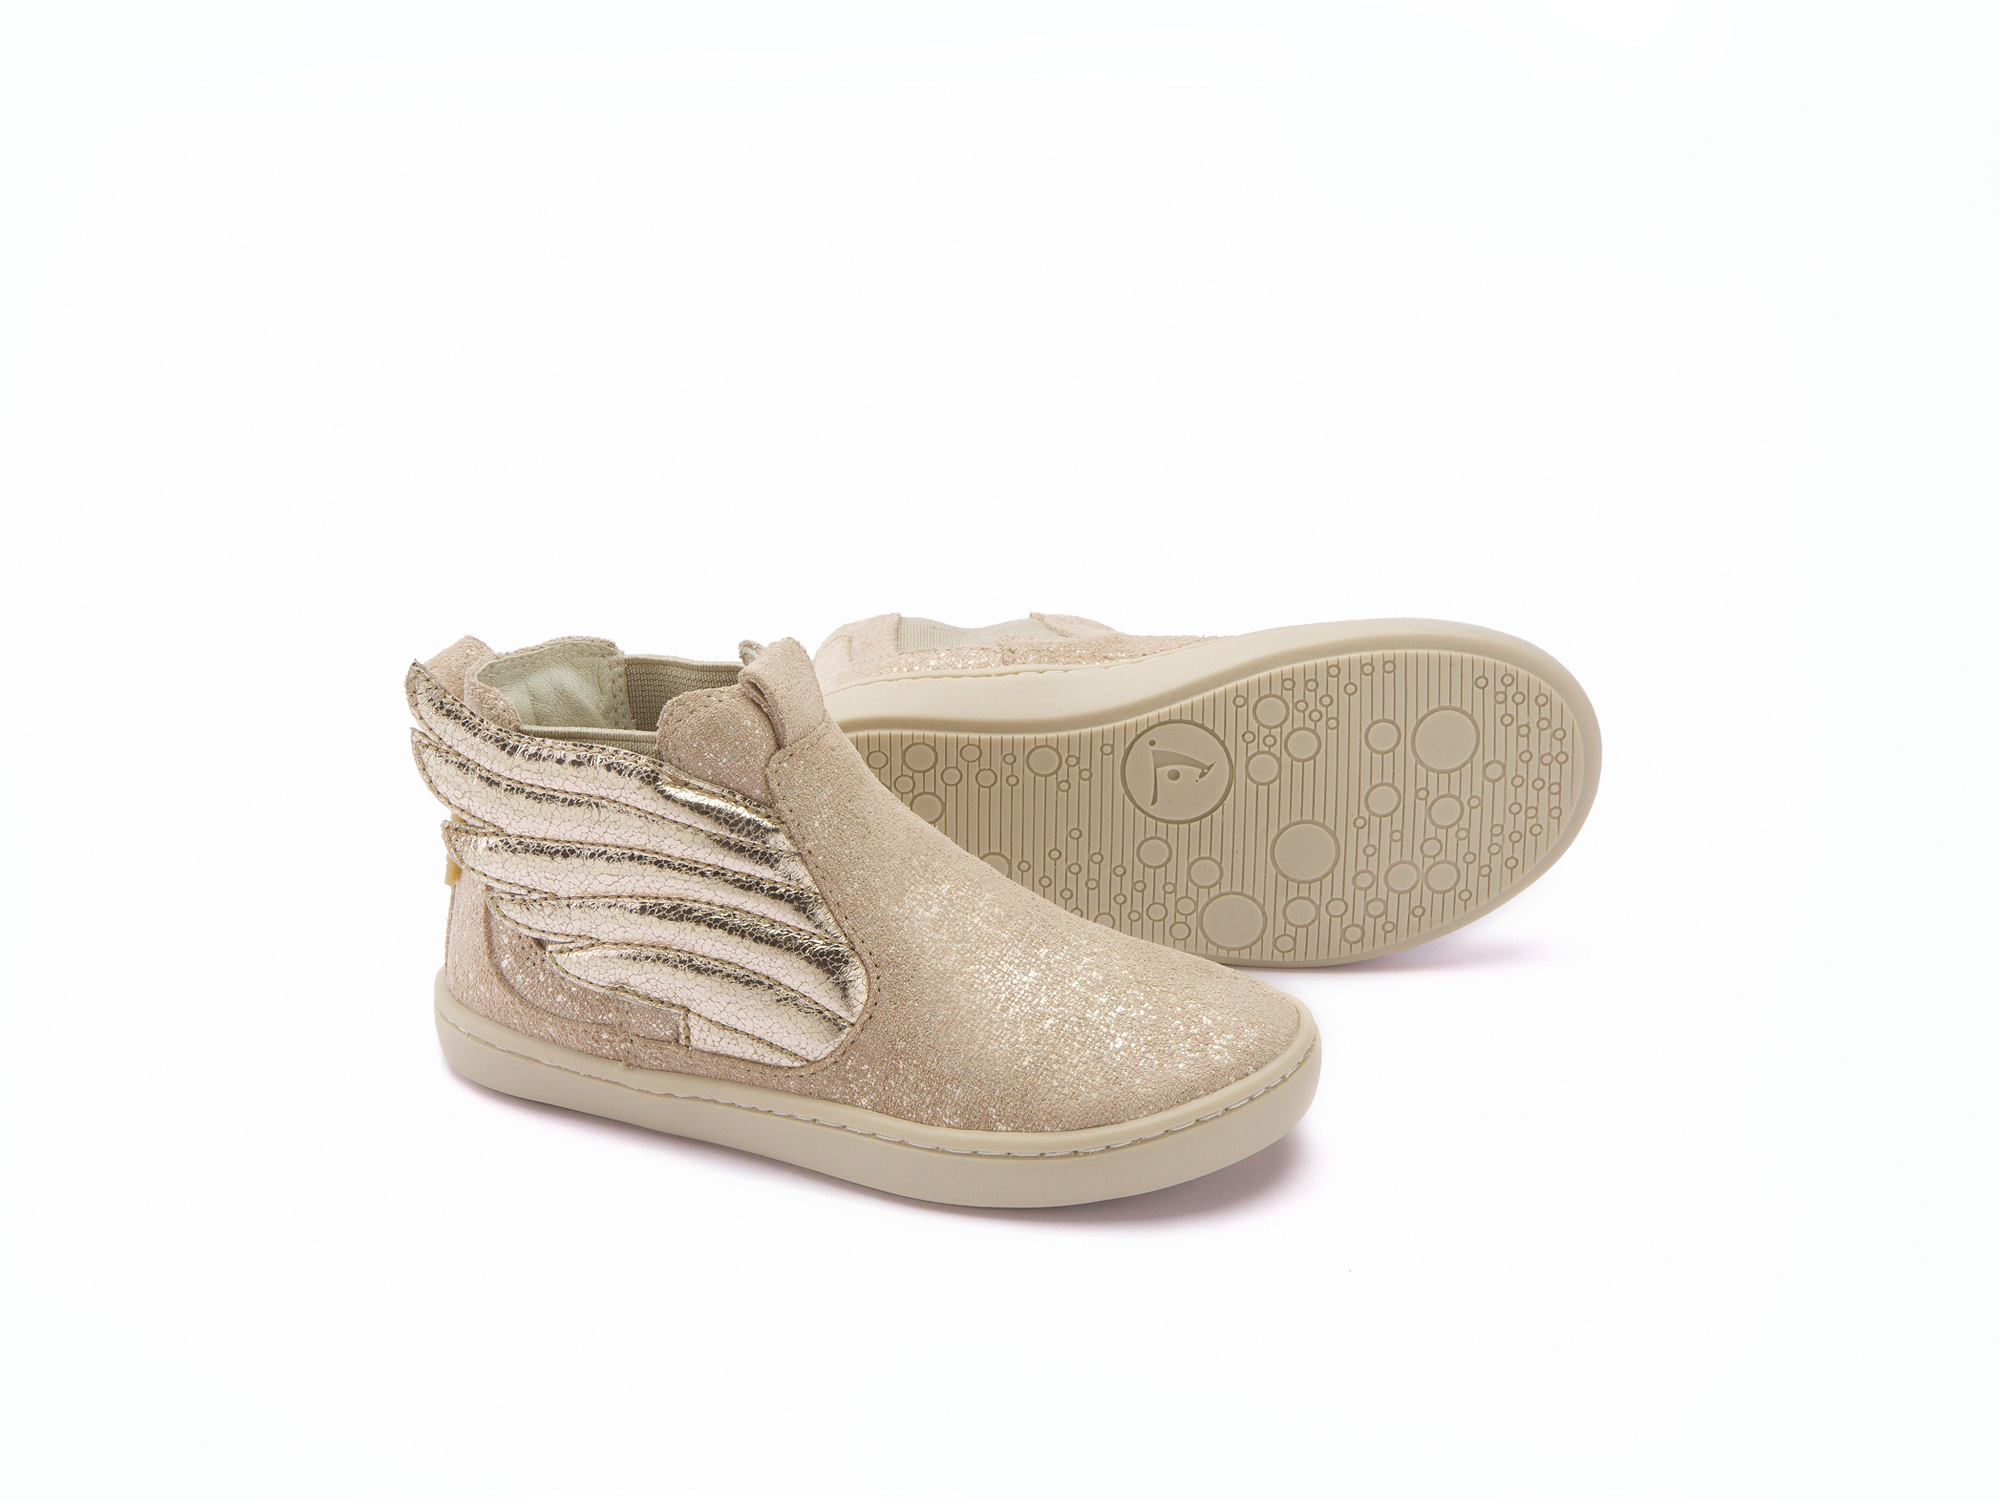 Bota Little Fantasy Rose Rustic Suede/ Salmon Shine Toddler 2 à 4 anos - 2